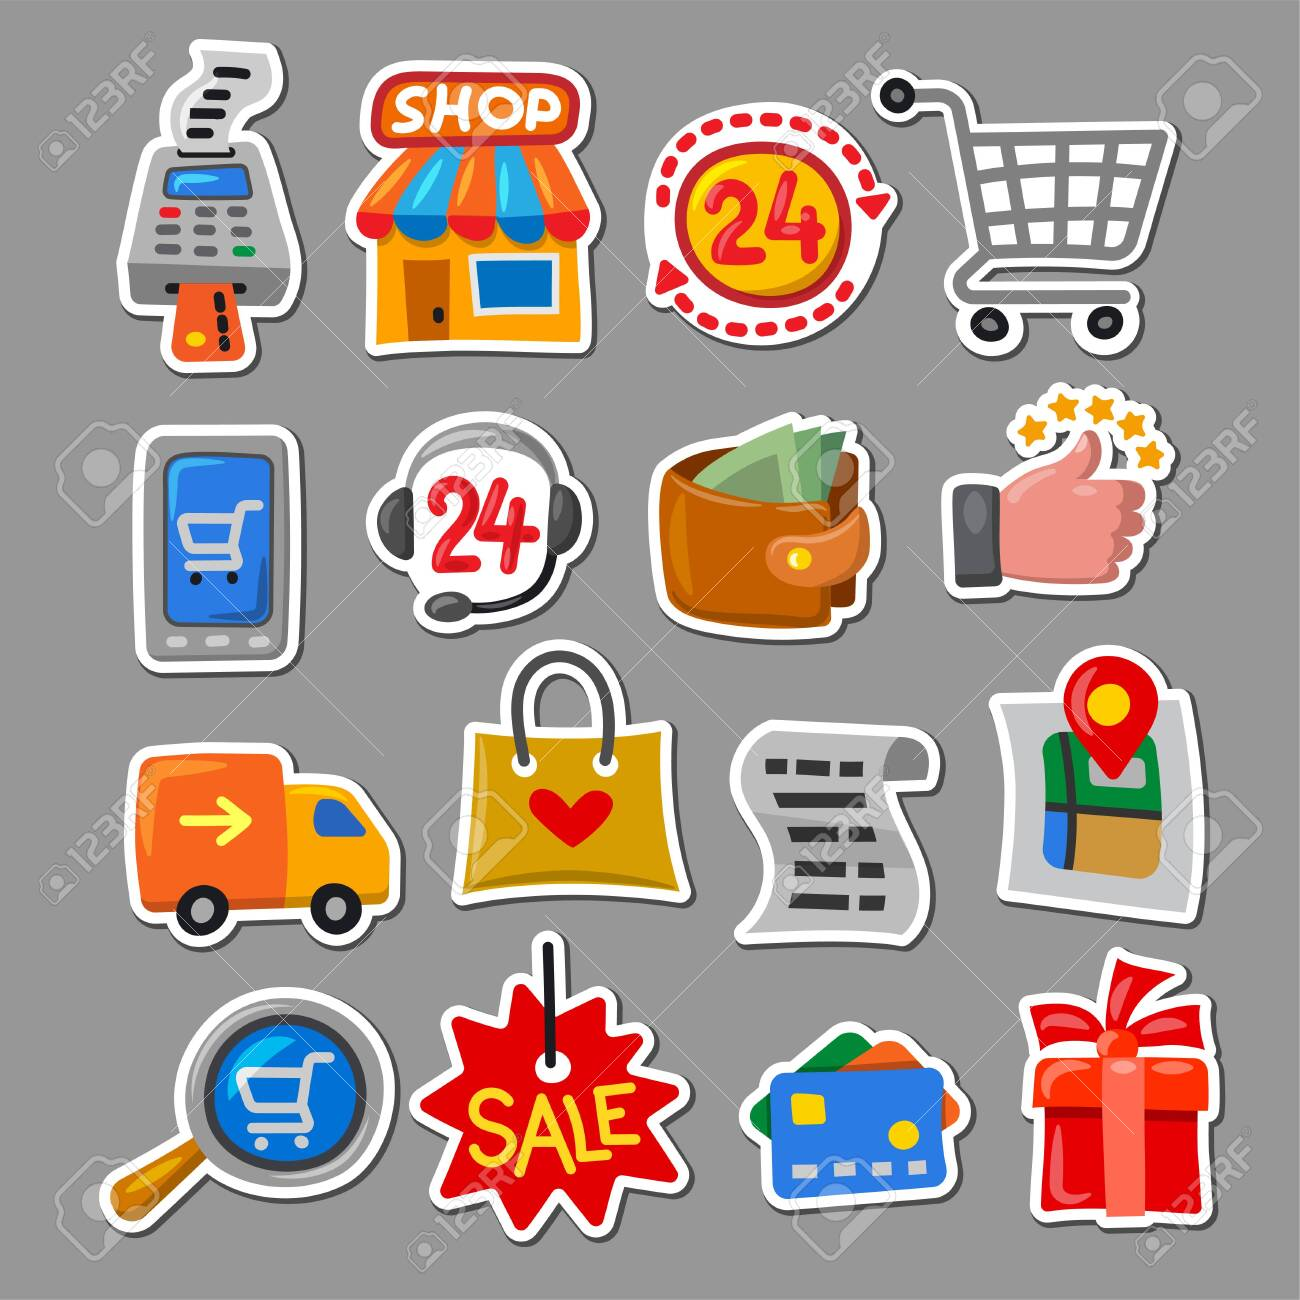 illustration of the set shopping and sale stickers in a cartoon style - 145299054